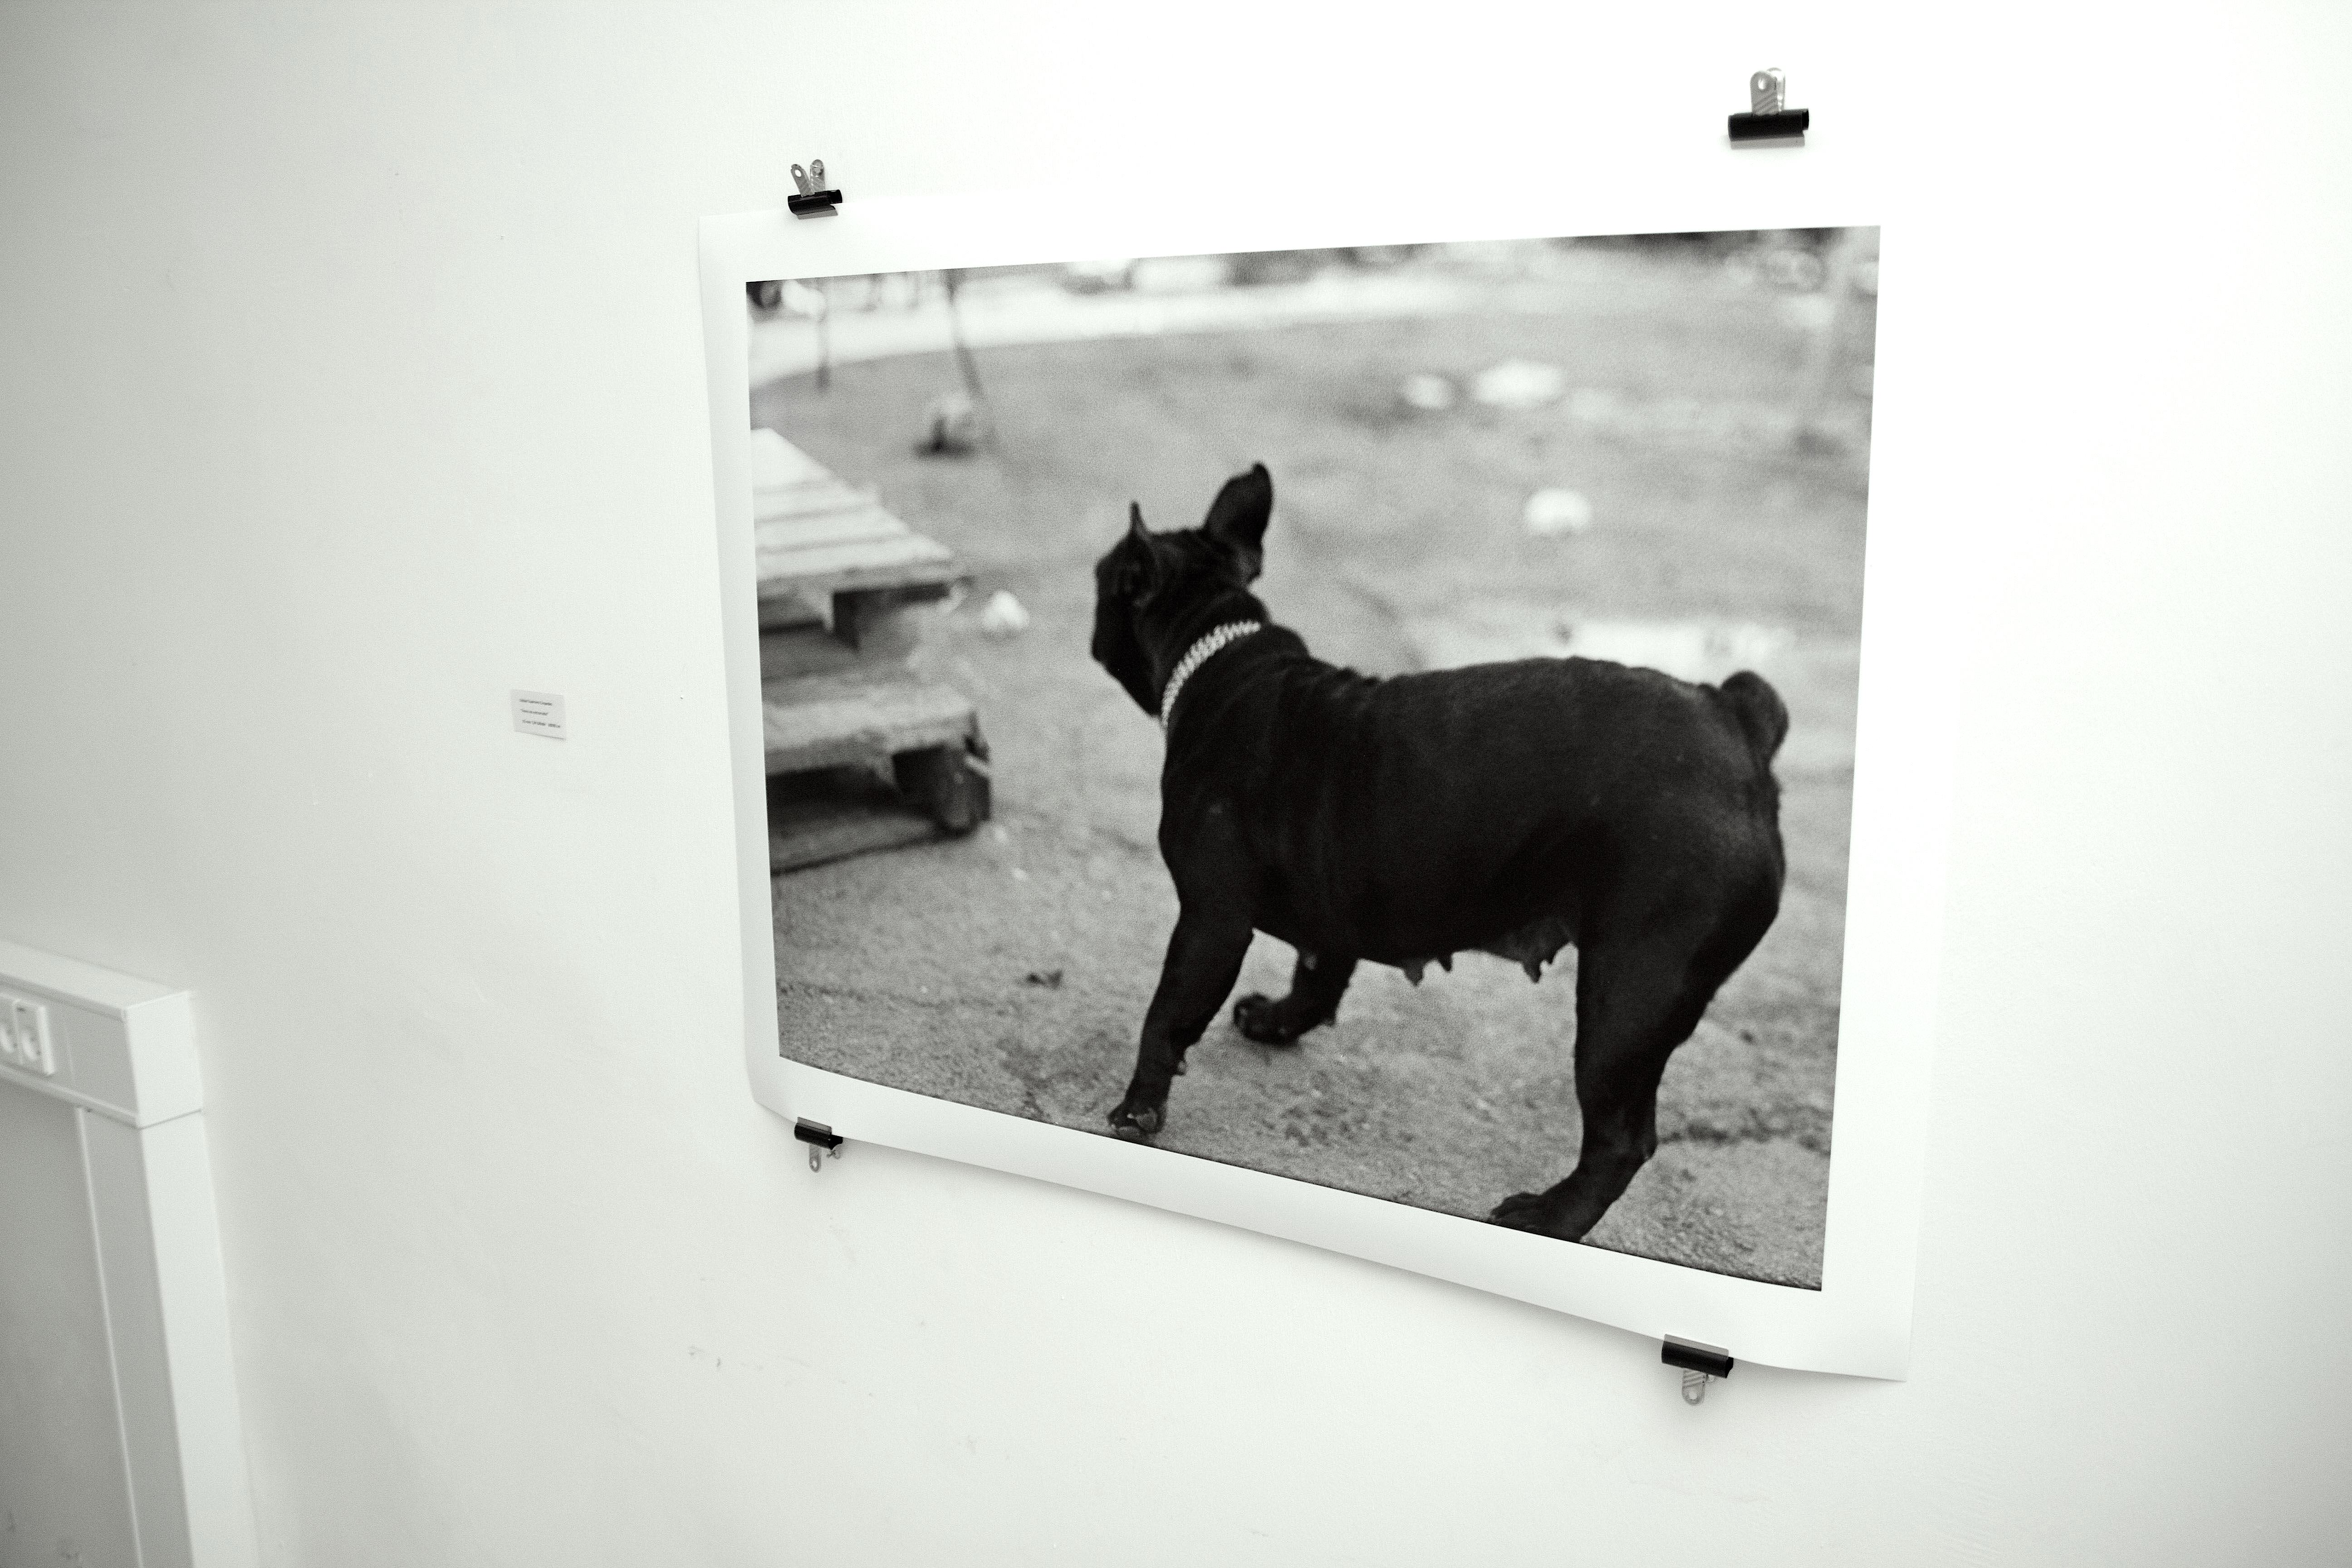 posters-prints, photographs, expressive, figurative, monochrome, portraiture, animals, everyday life, humor, movement, pets, beige, black, photographs, amusing, black-and-white, contemporary-art, cute, day, decorative, dogs, modern-art, nordic, outdoors, posters, pretty, scandinavien, silhouette, streets, urban, vibrant, Buy original high quality art. Paintings, drawings, limited edition prints & posters by talented artists.